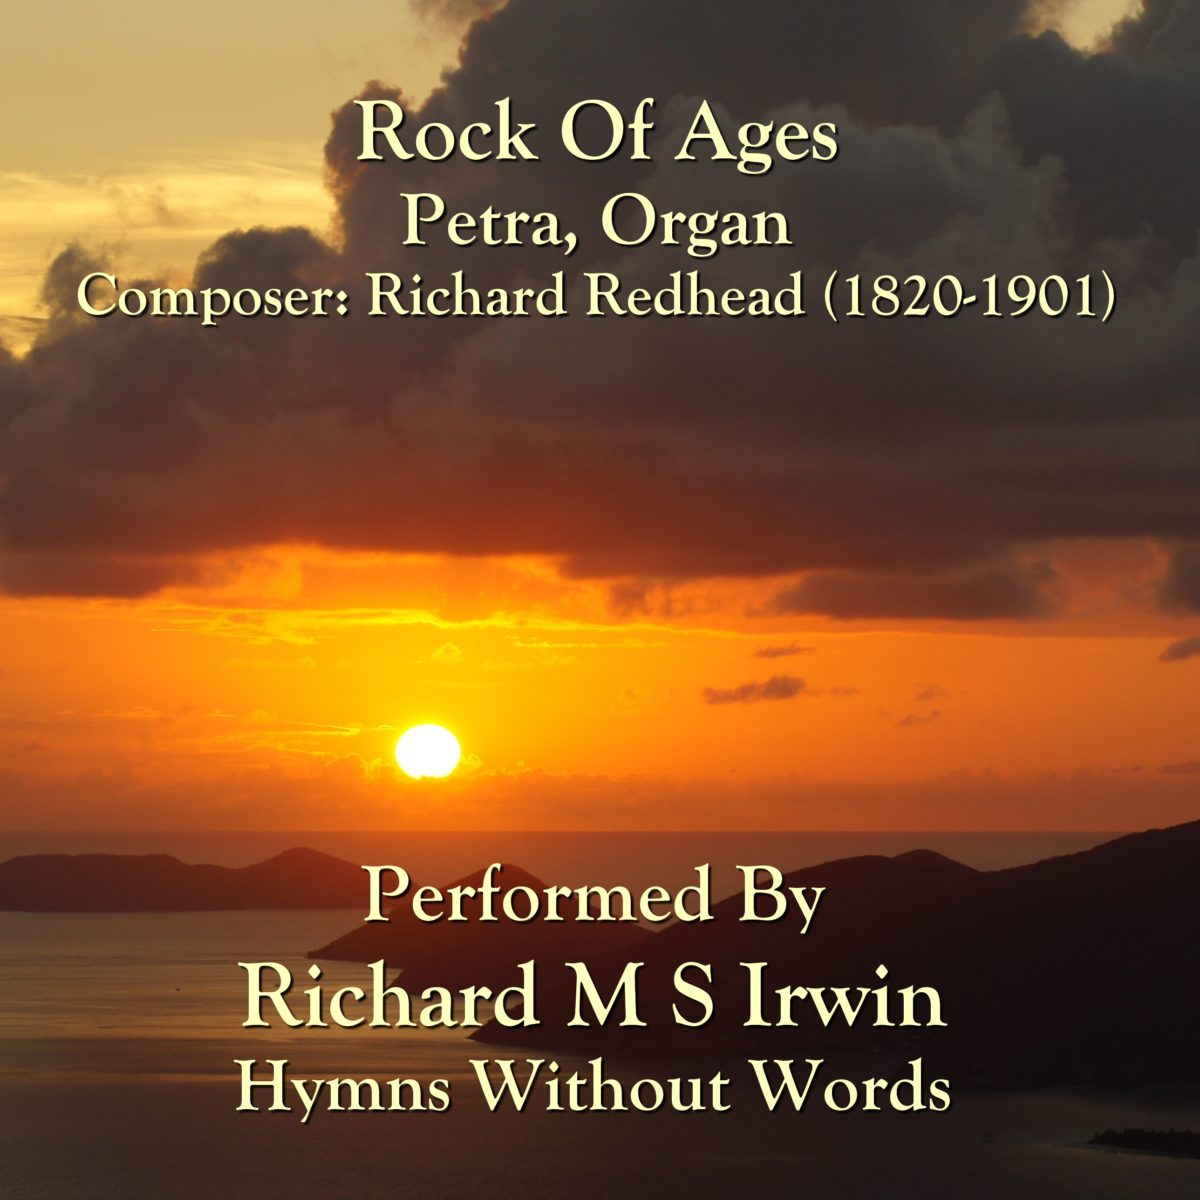 Rock Of Ages (Petra, Organ, 4 Verses)